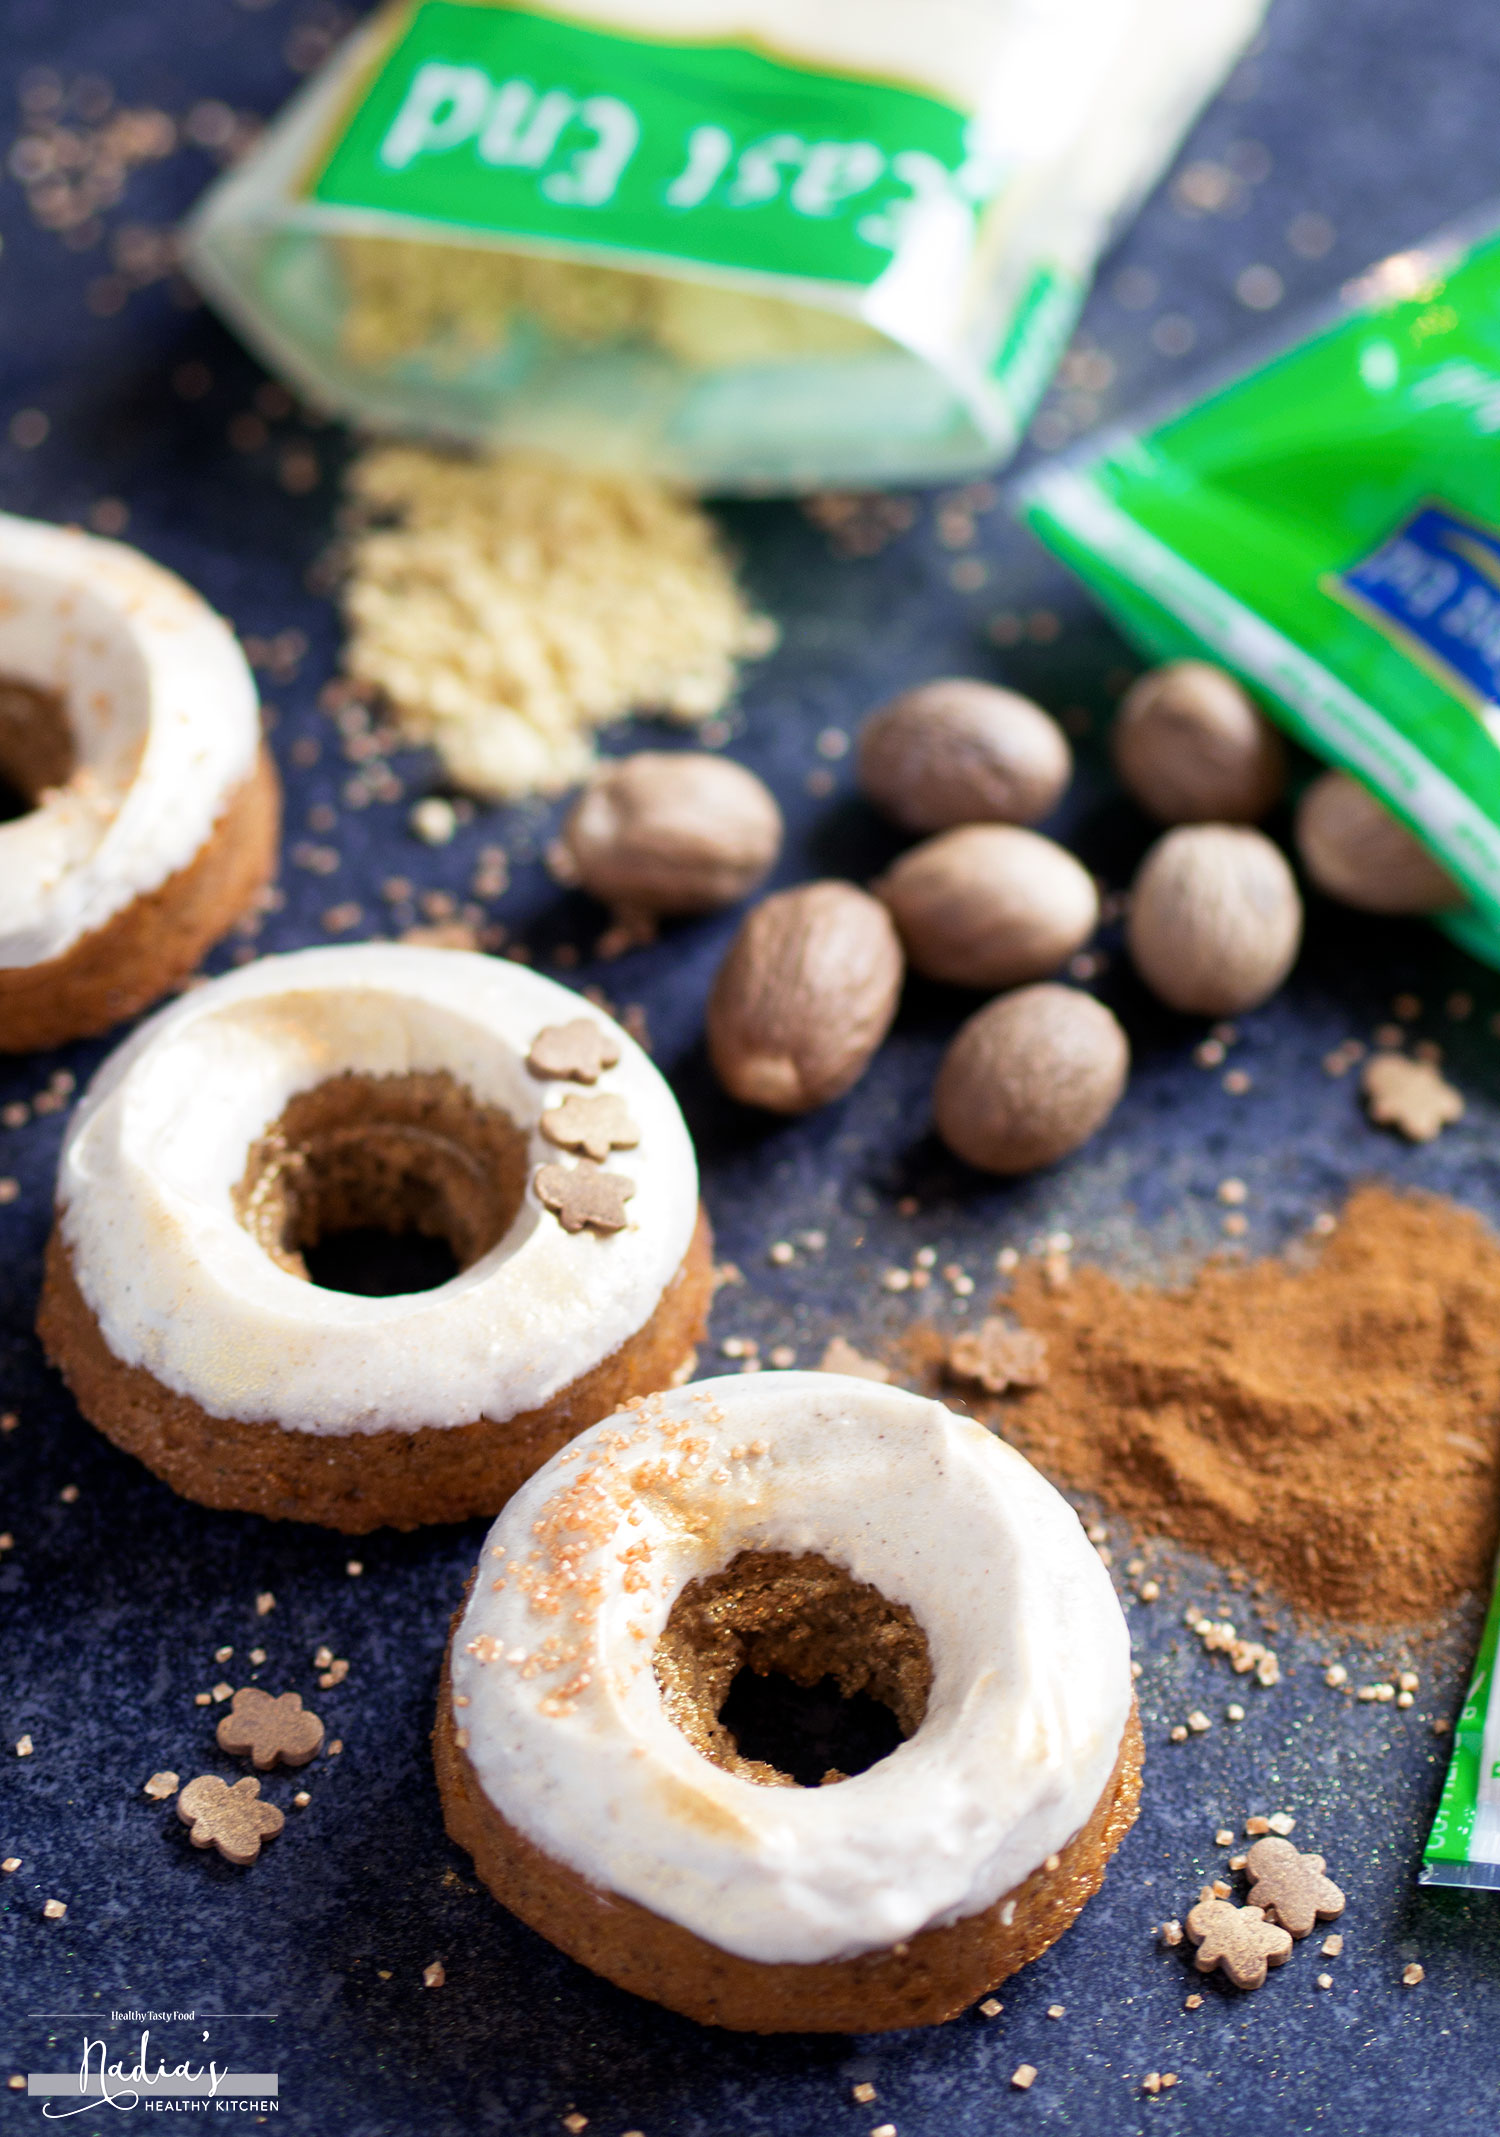 Vegan Gluten-free Gingerbread Doughnuts - UK Health Blog - Nadia's ...